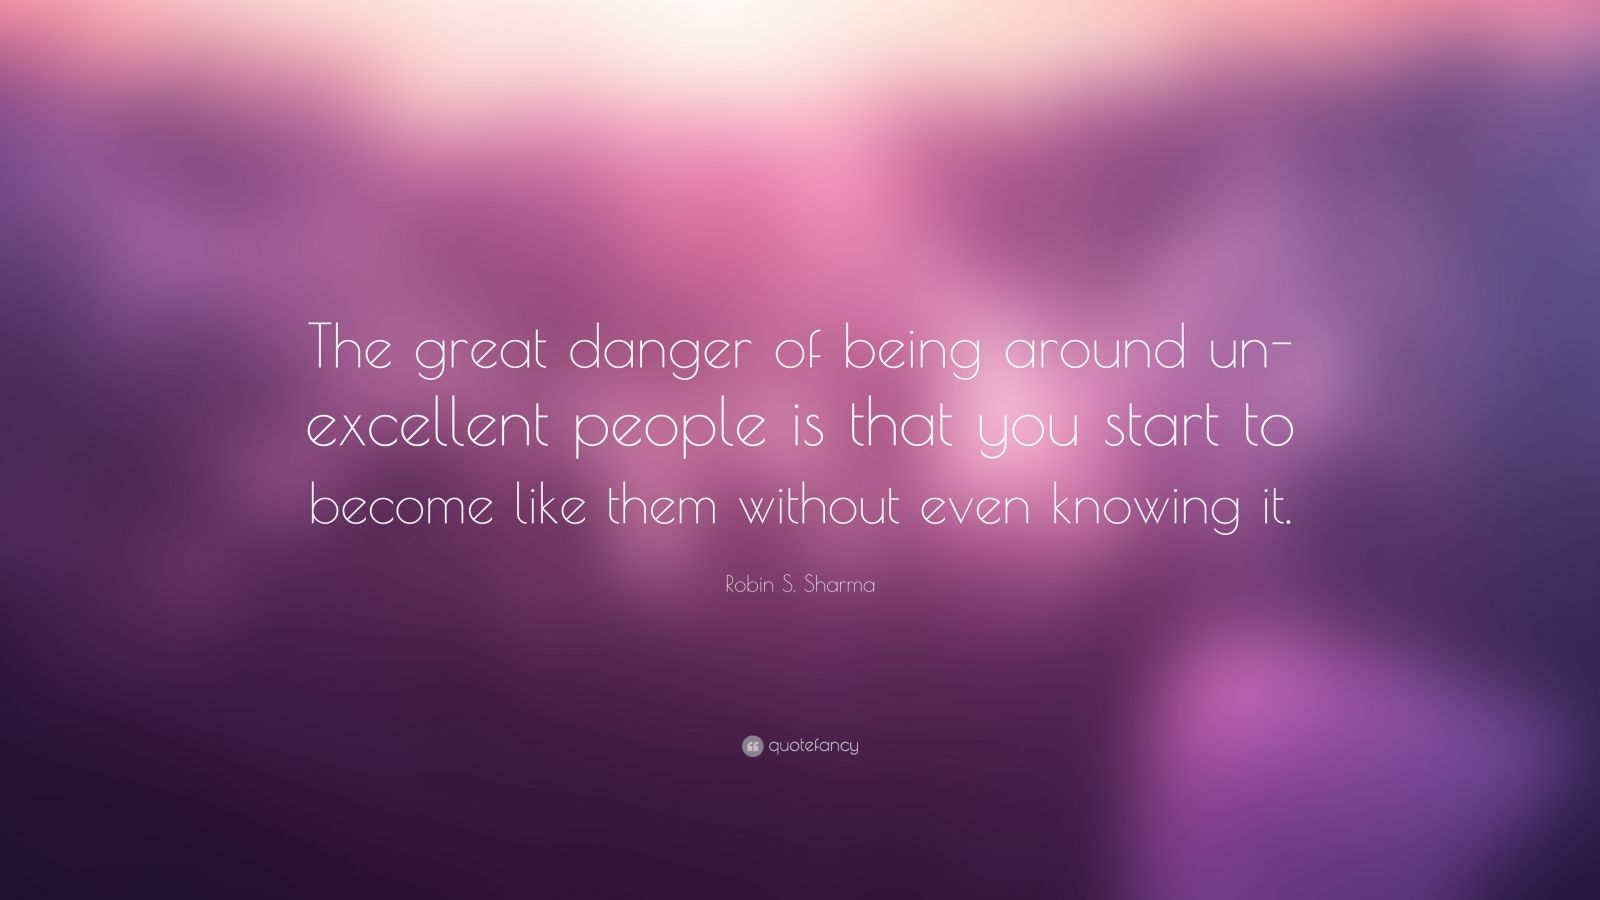 """Robin S. Sharma Quote: """"The great danger of being around un-excellent people is that you start to become like them without even knowing it."""""""